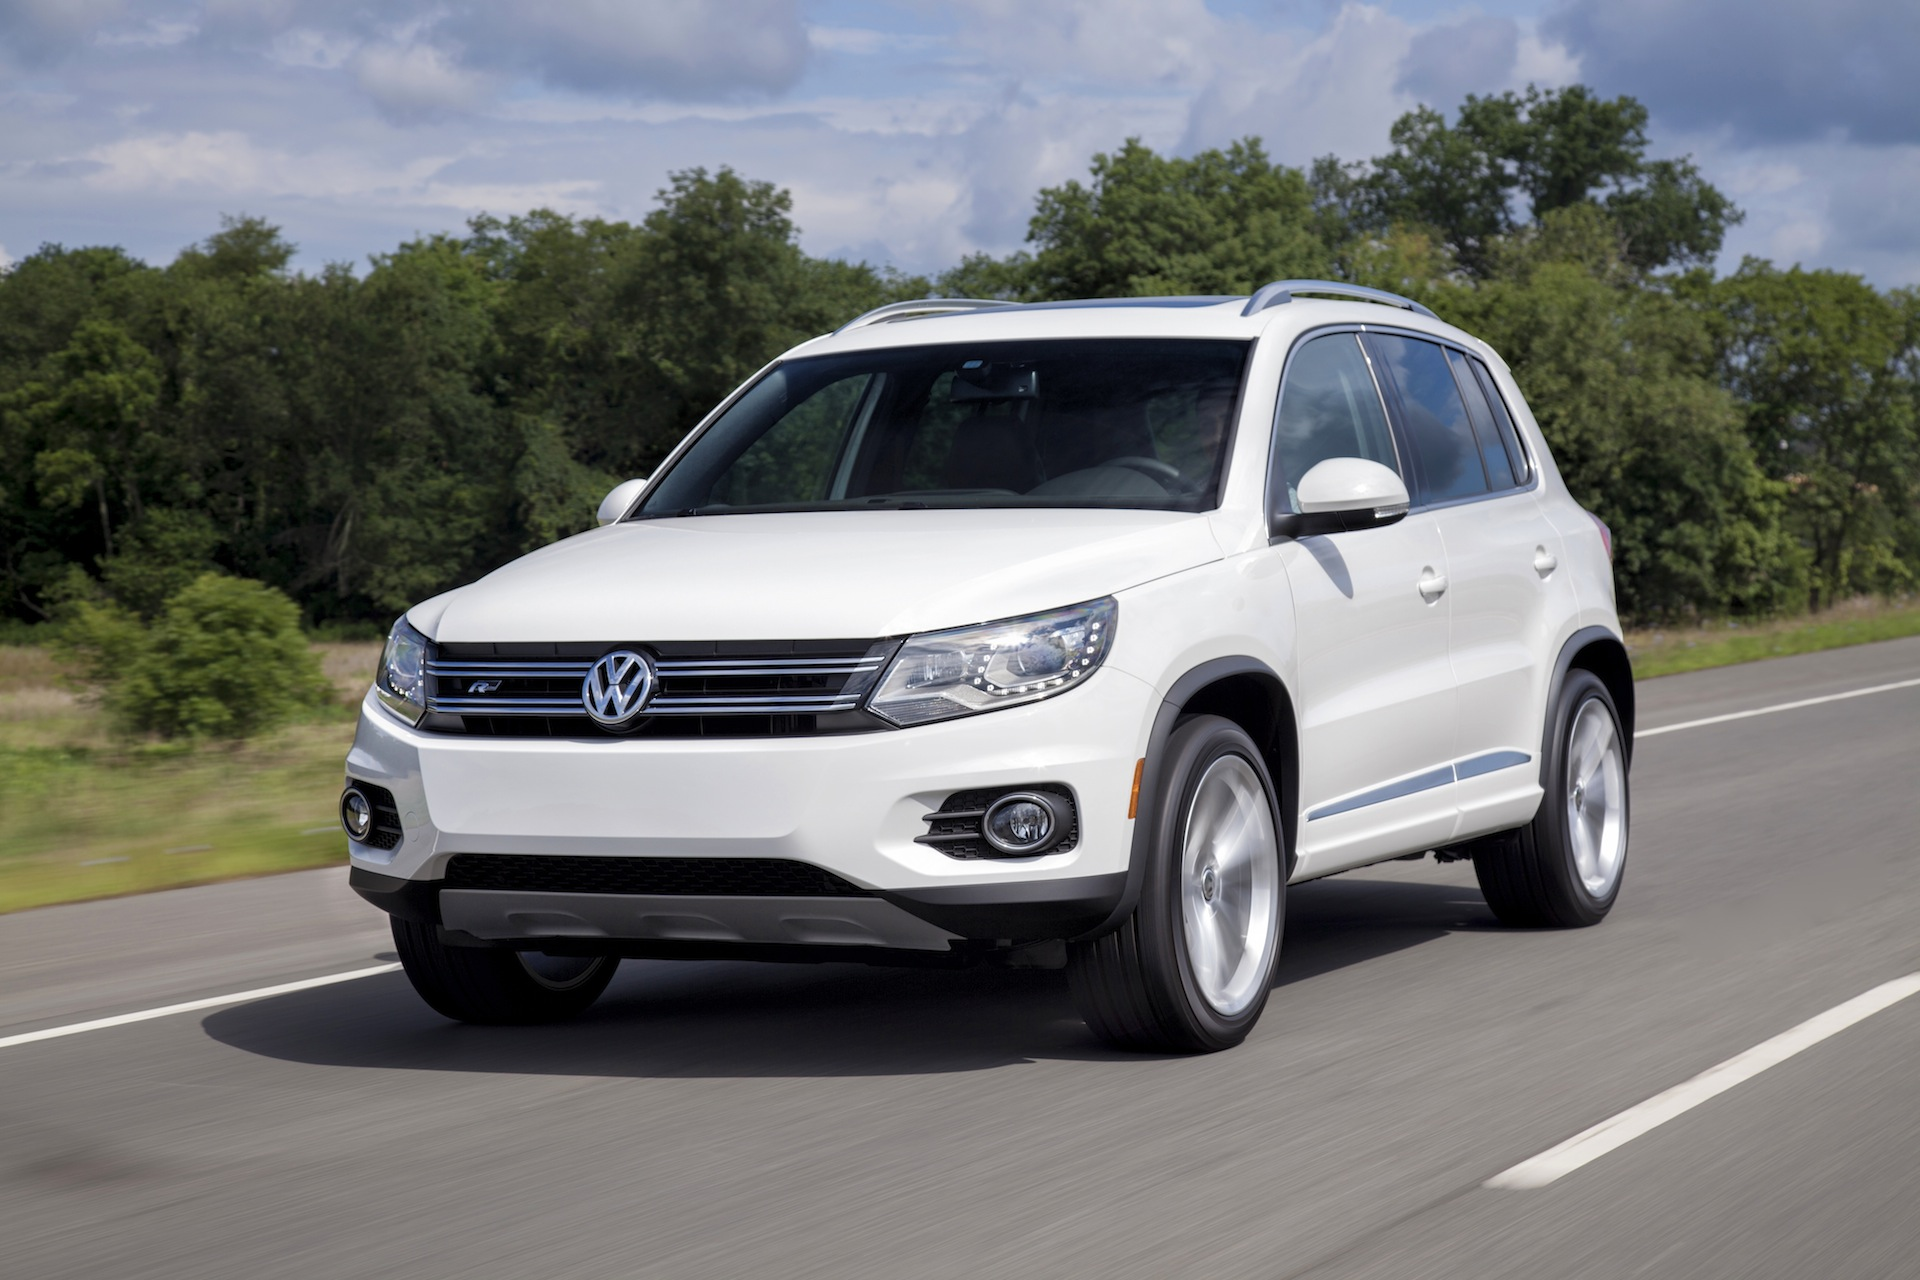 2014 volkswagen tiguan vw review ratings specs prices and photos the car connection. Black Bedroom Furniture Sets. Home Design Ideas